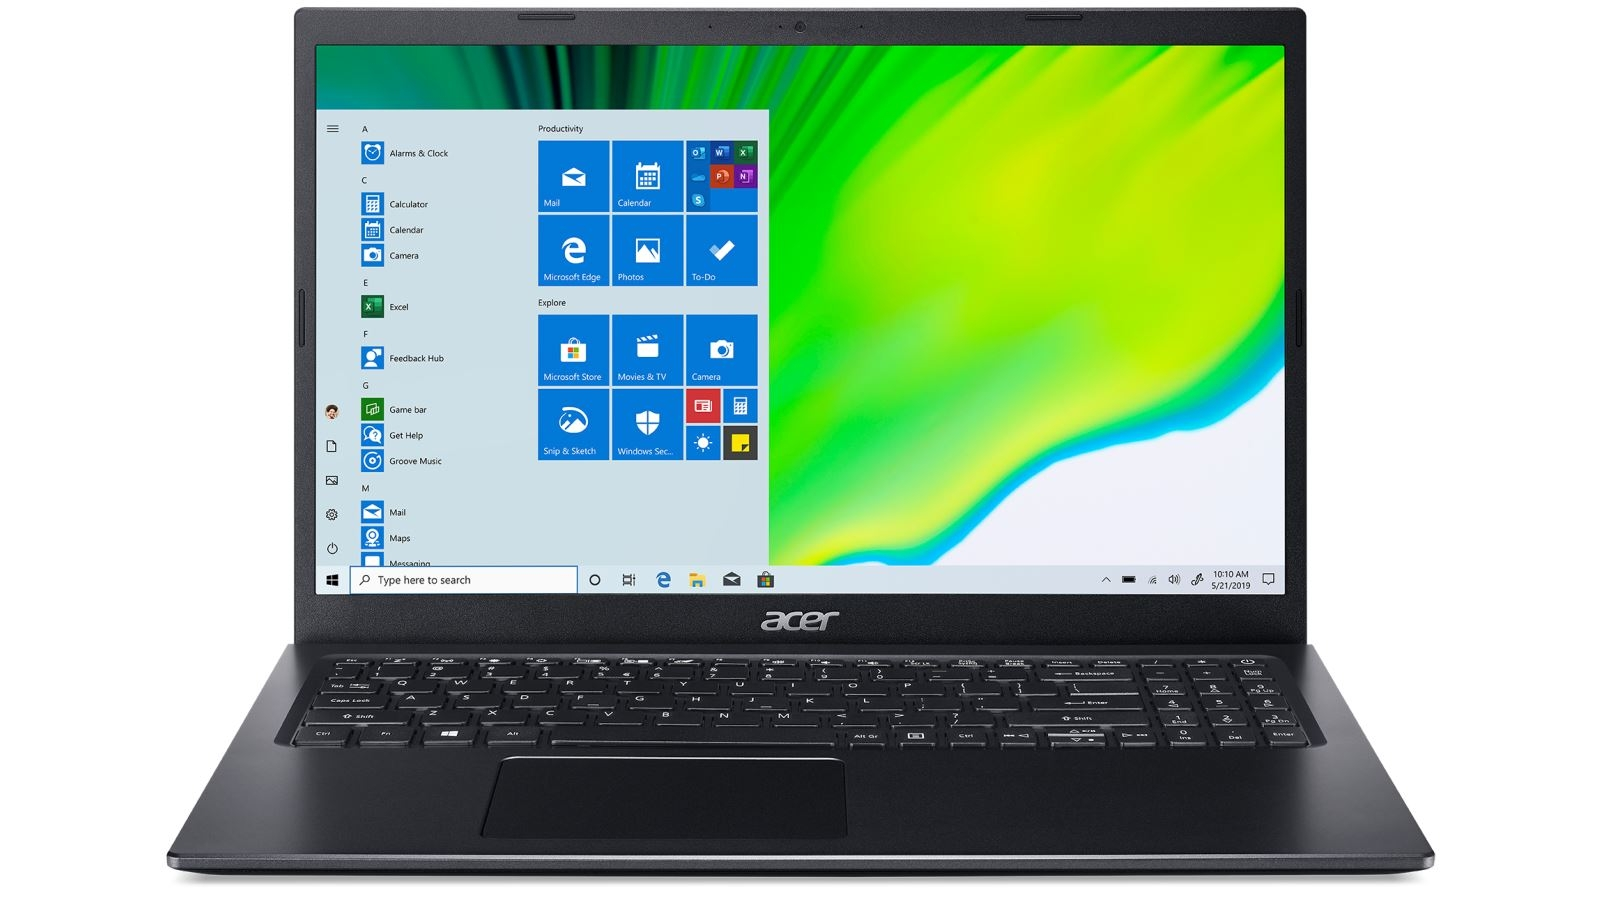 Image of Acer Aspire 5 15.6-inch i5-1135G7/8GB/256GB SSD Laptop